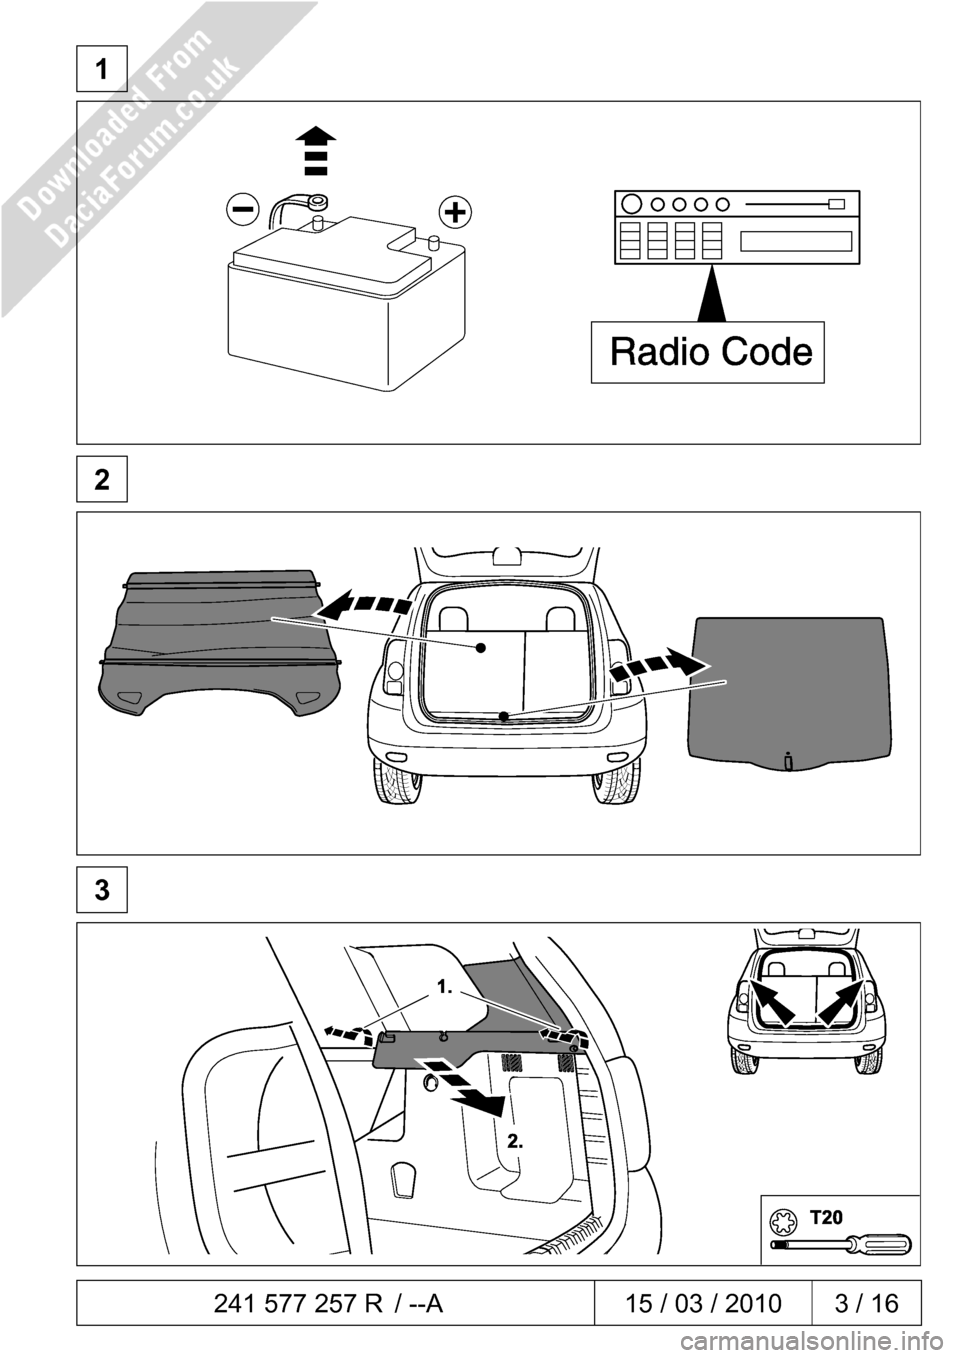 DACIA DUSTER 2010 1.G 13 Pin Towbar Fitting Guide Workshop Manual, Page 3